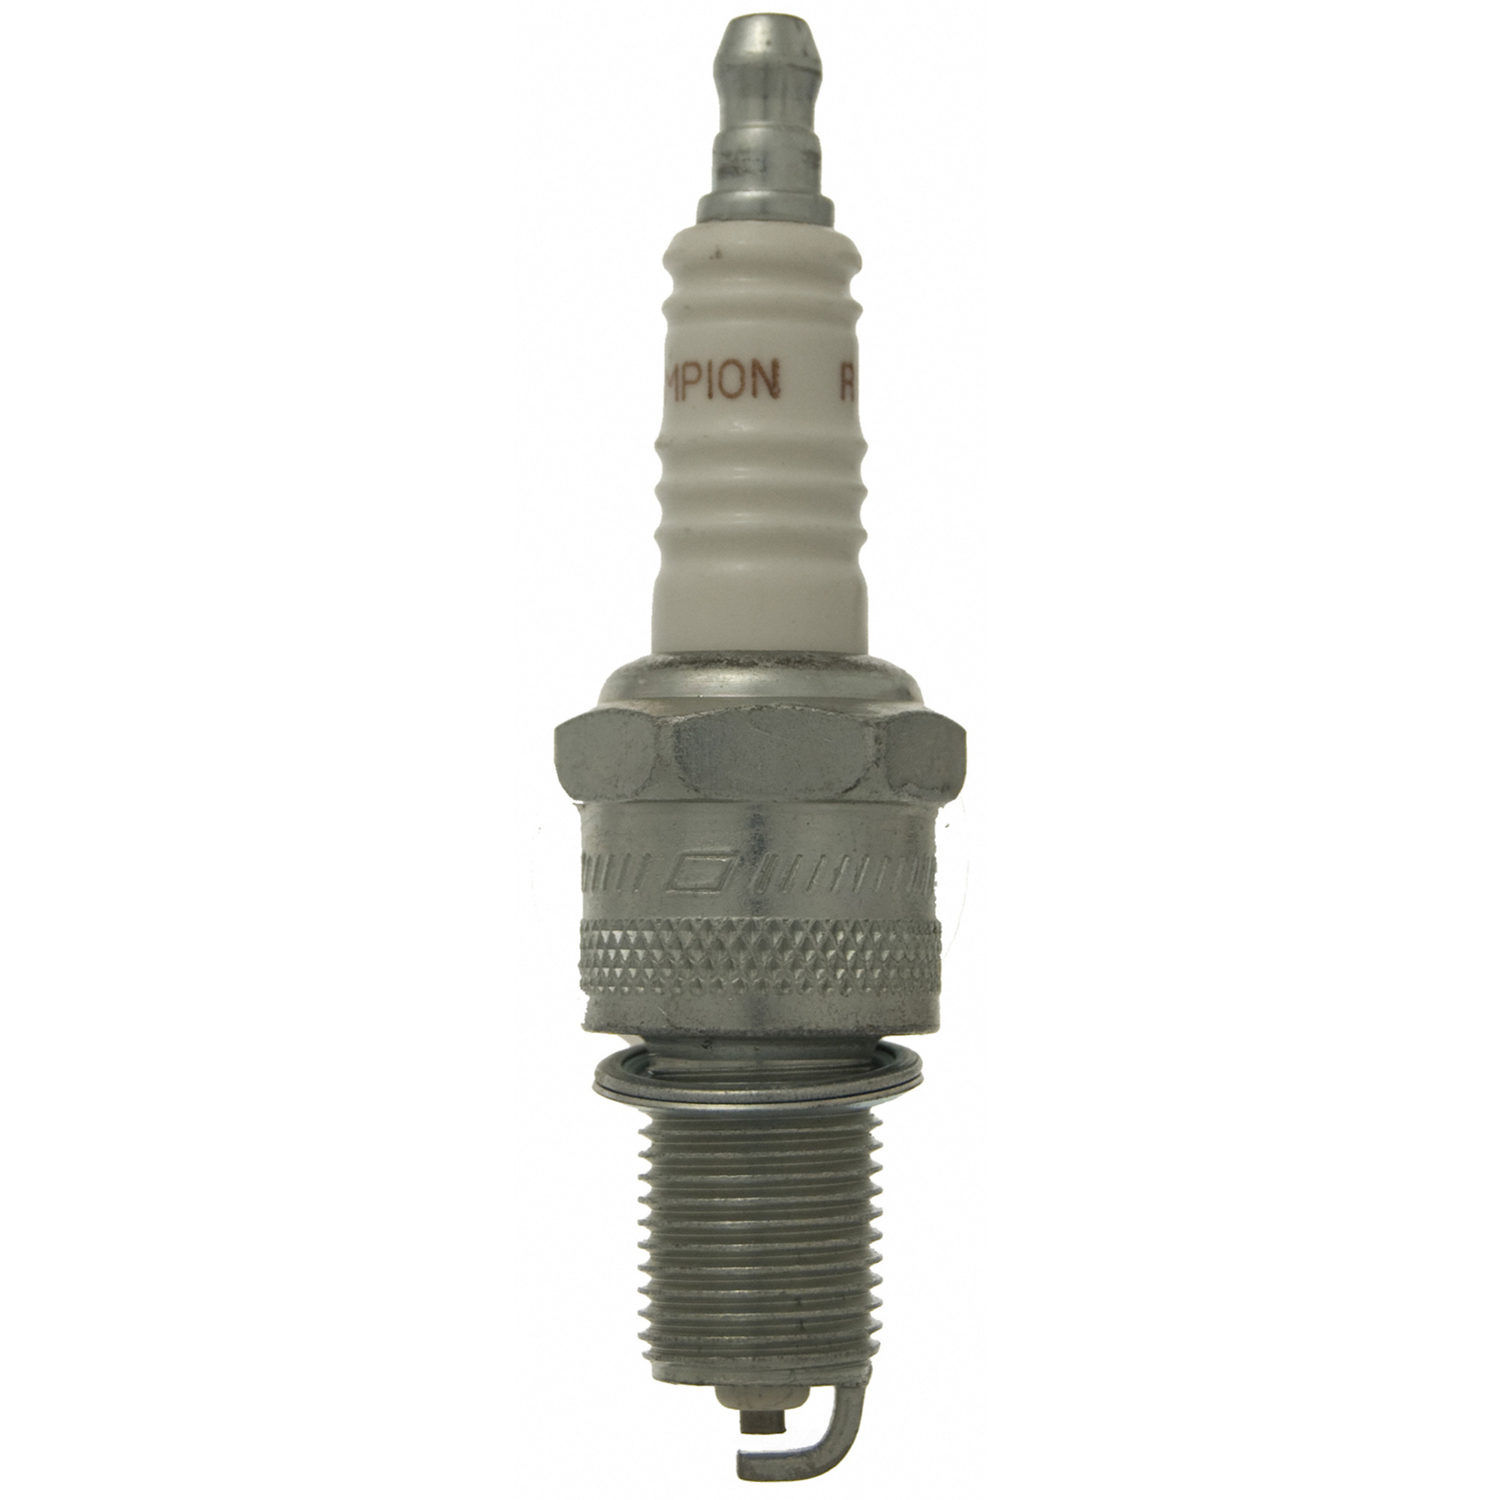 CHAMPION SPARK PLUGS - Copper Plus Spark Plug - CHA 300